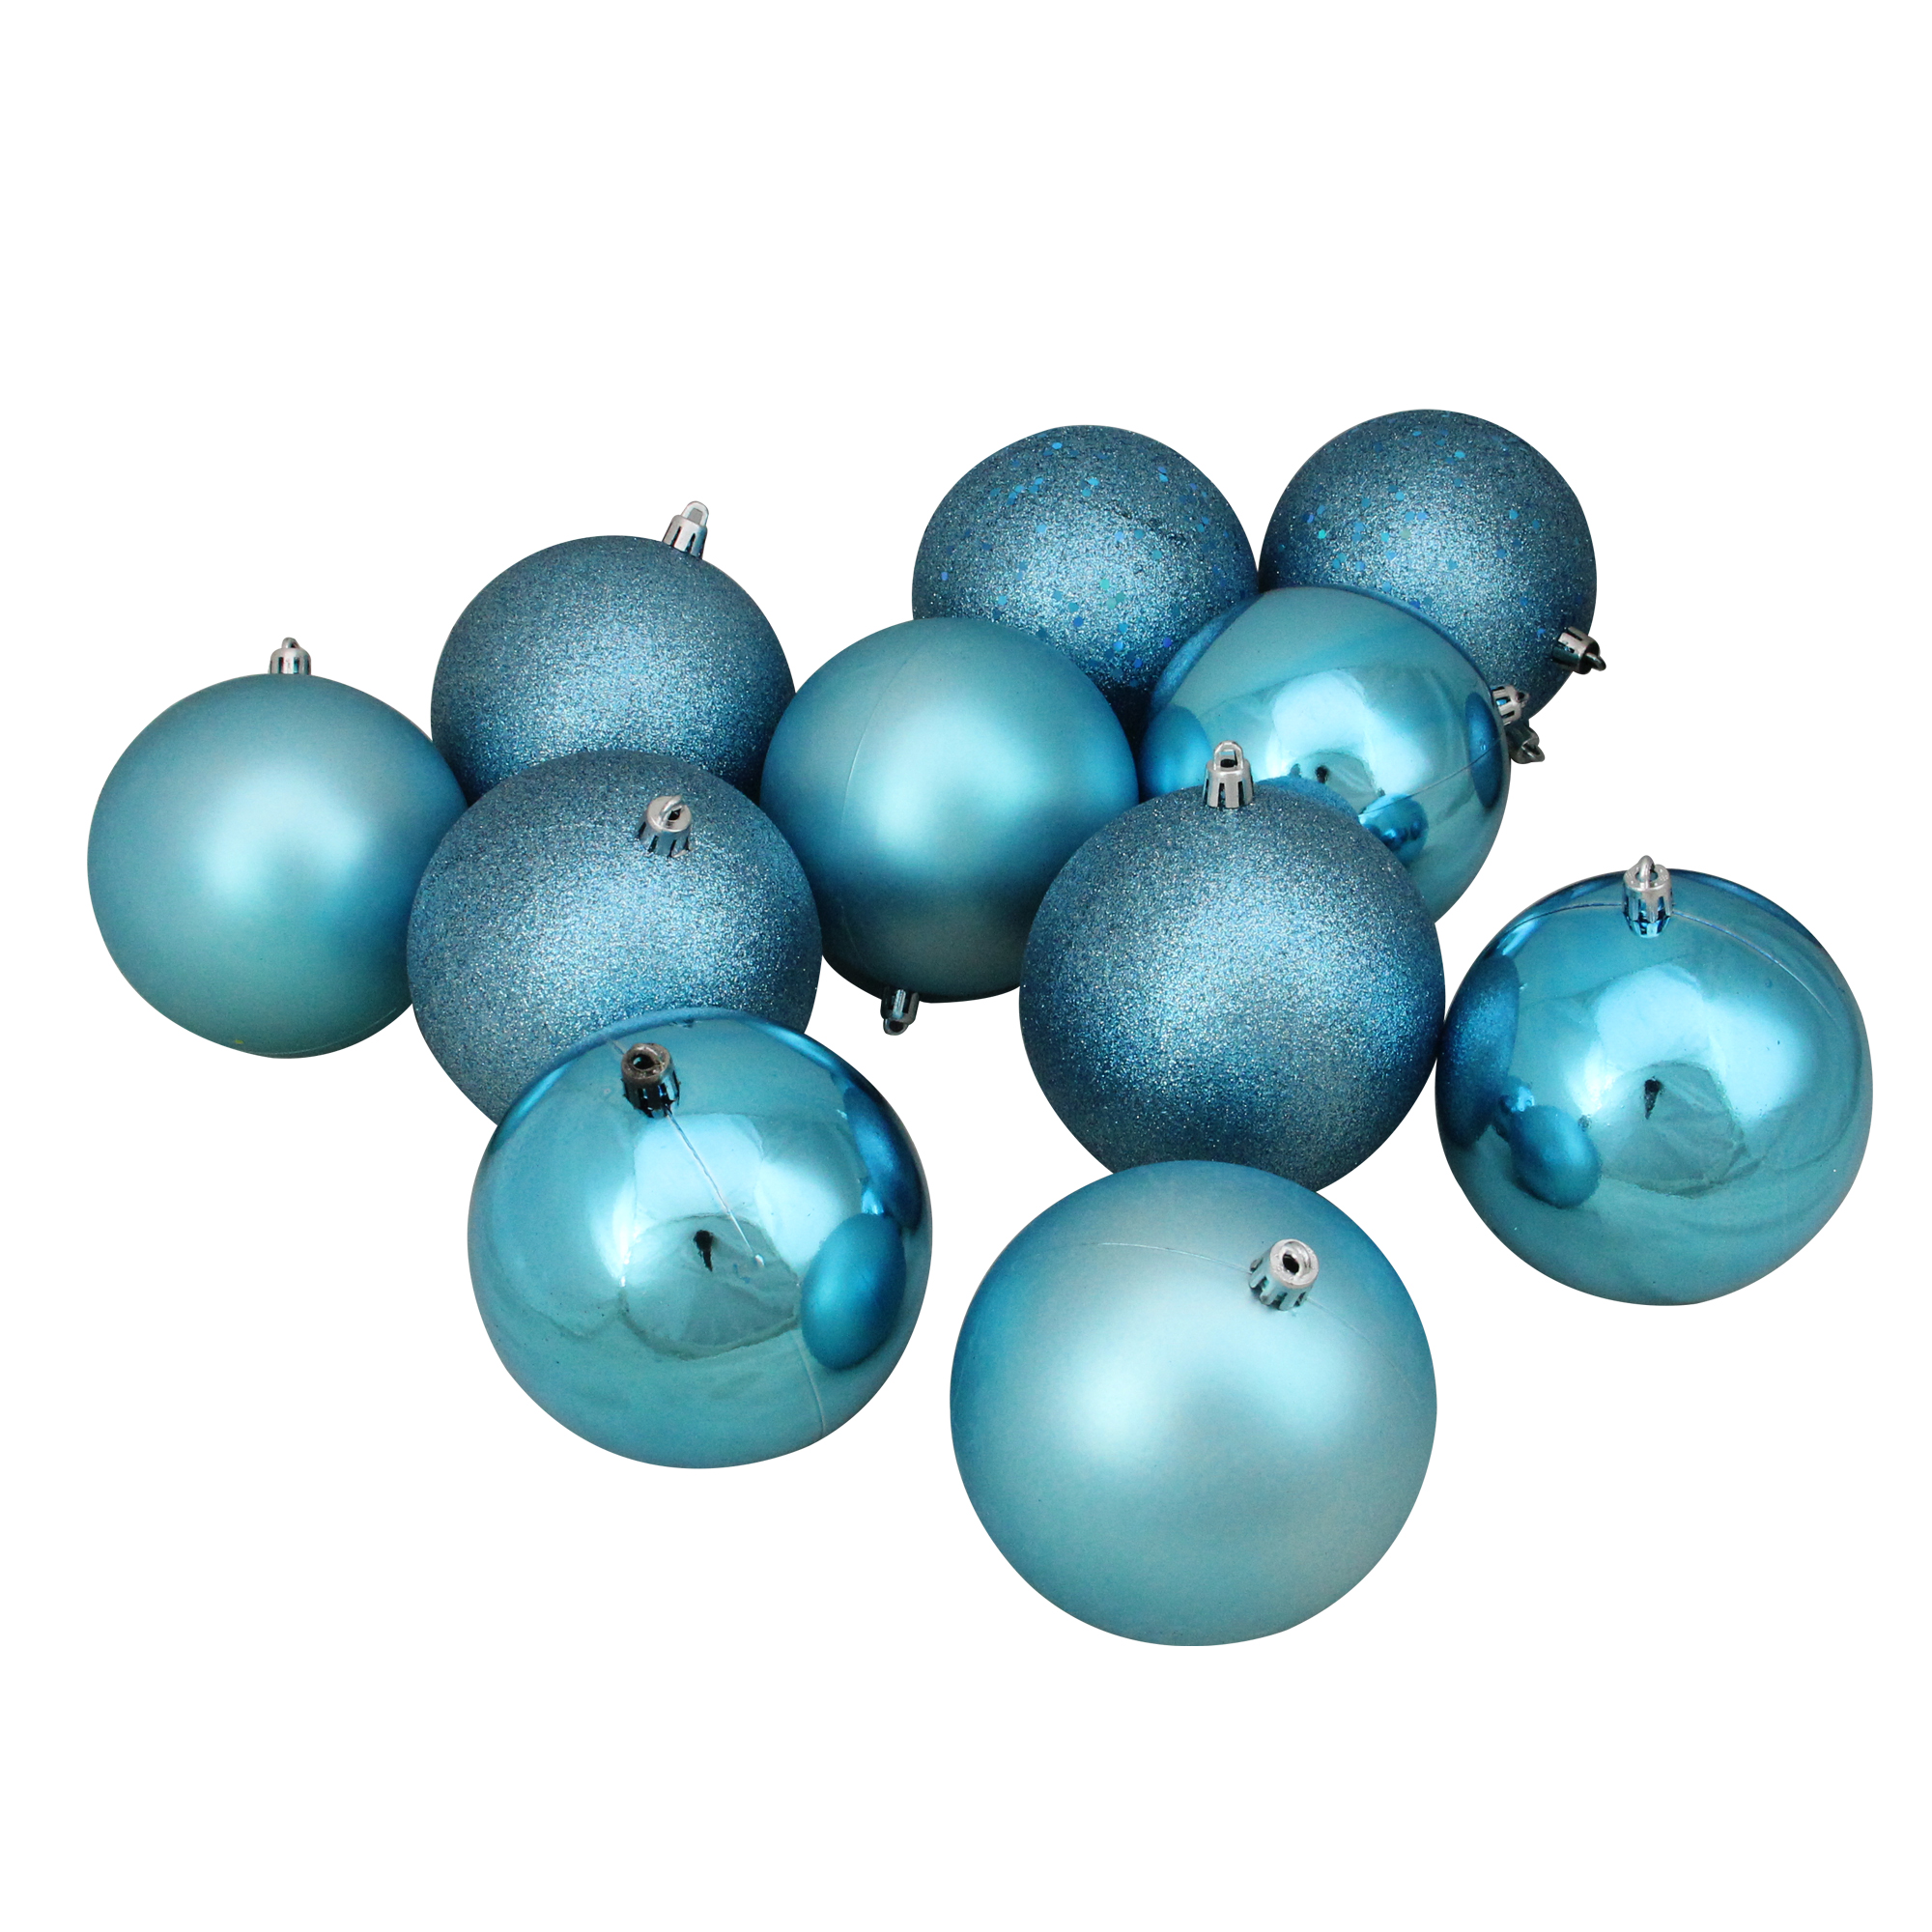 """12ct Turquoise Blue Shatterproof 4-Finish Christmas Ball Ornaments 4"""" (100mm)"""